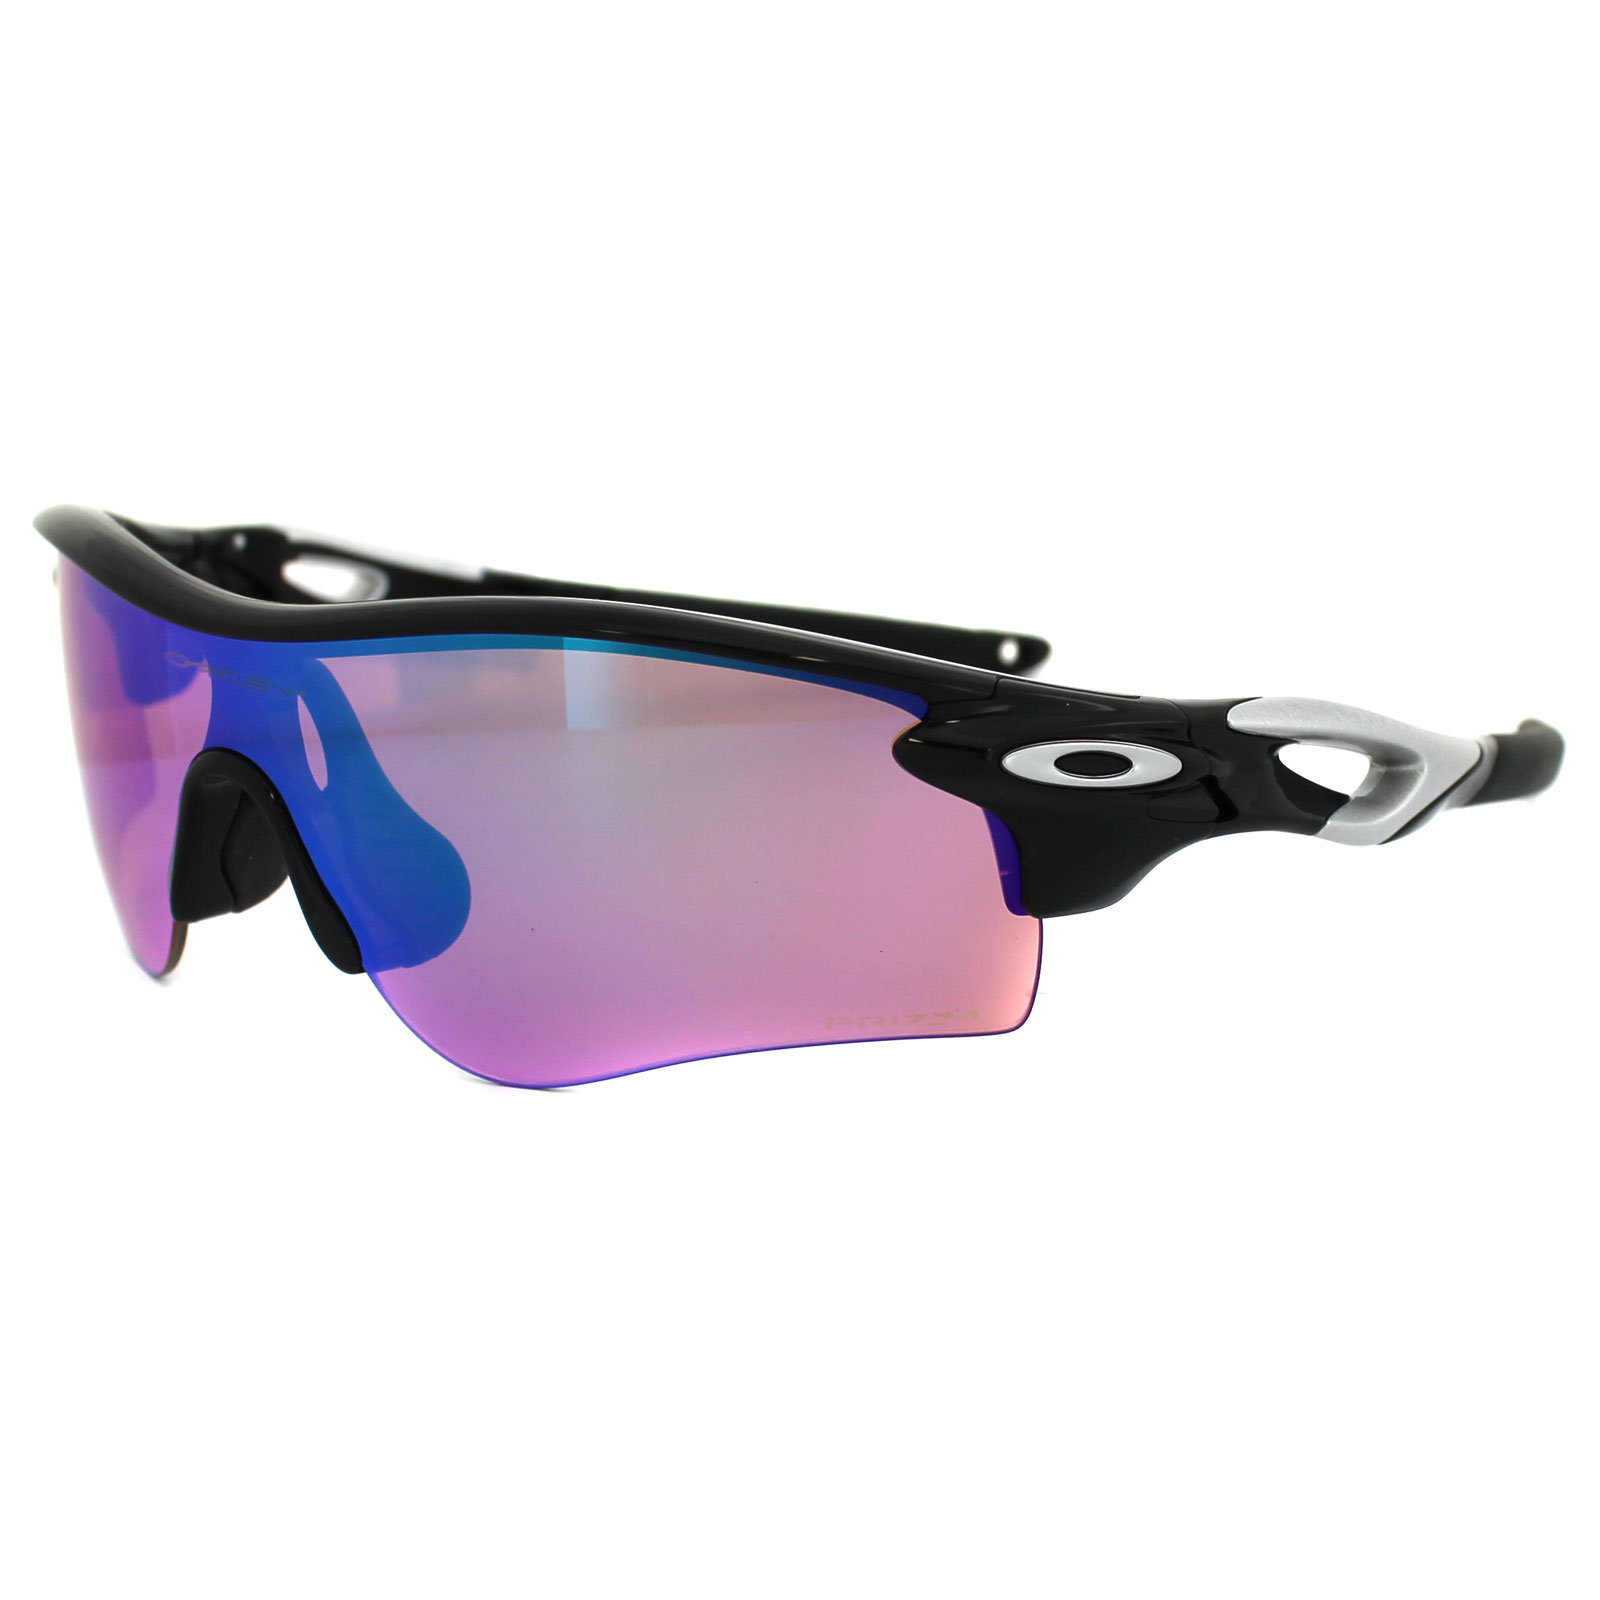 a326ef85c36 Oakley Golf Lenses Review « Heritage Malta